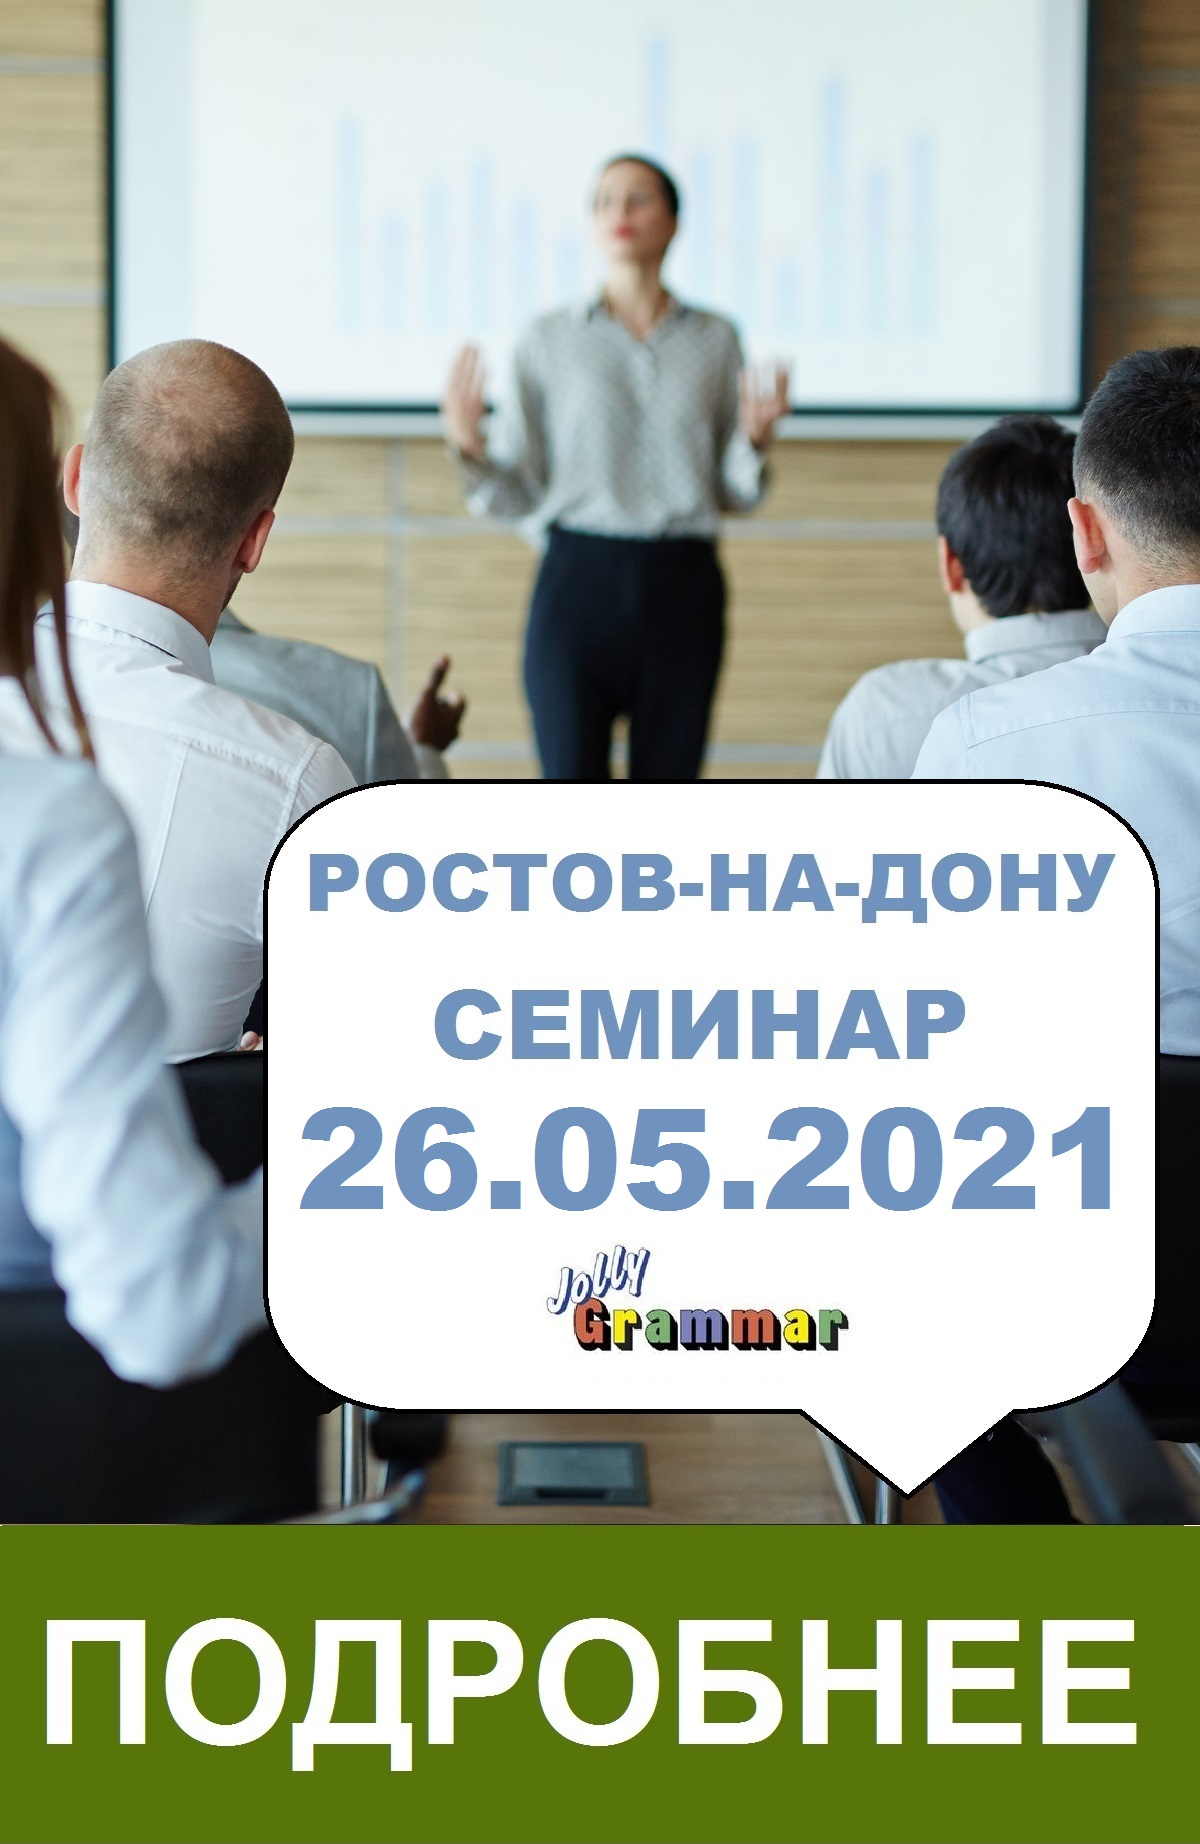 Семинар РОСТОВ-НА-ДОНУ 26.05.2021 Jolly Grammar Levels 1 – 3: Developing an understanding of how the English language works